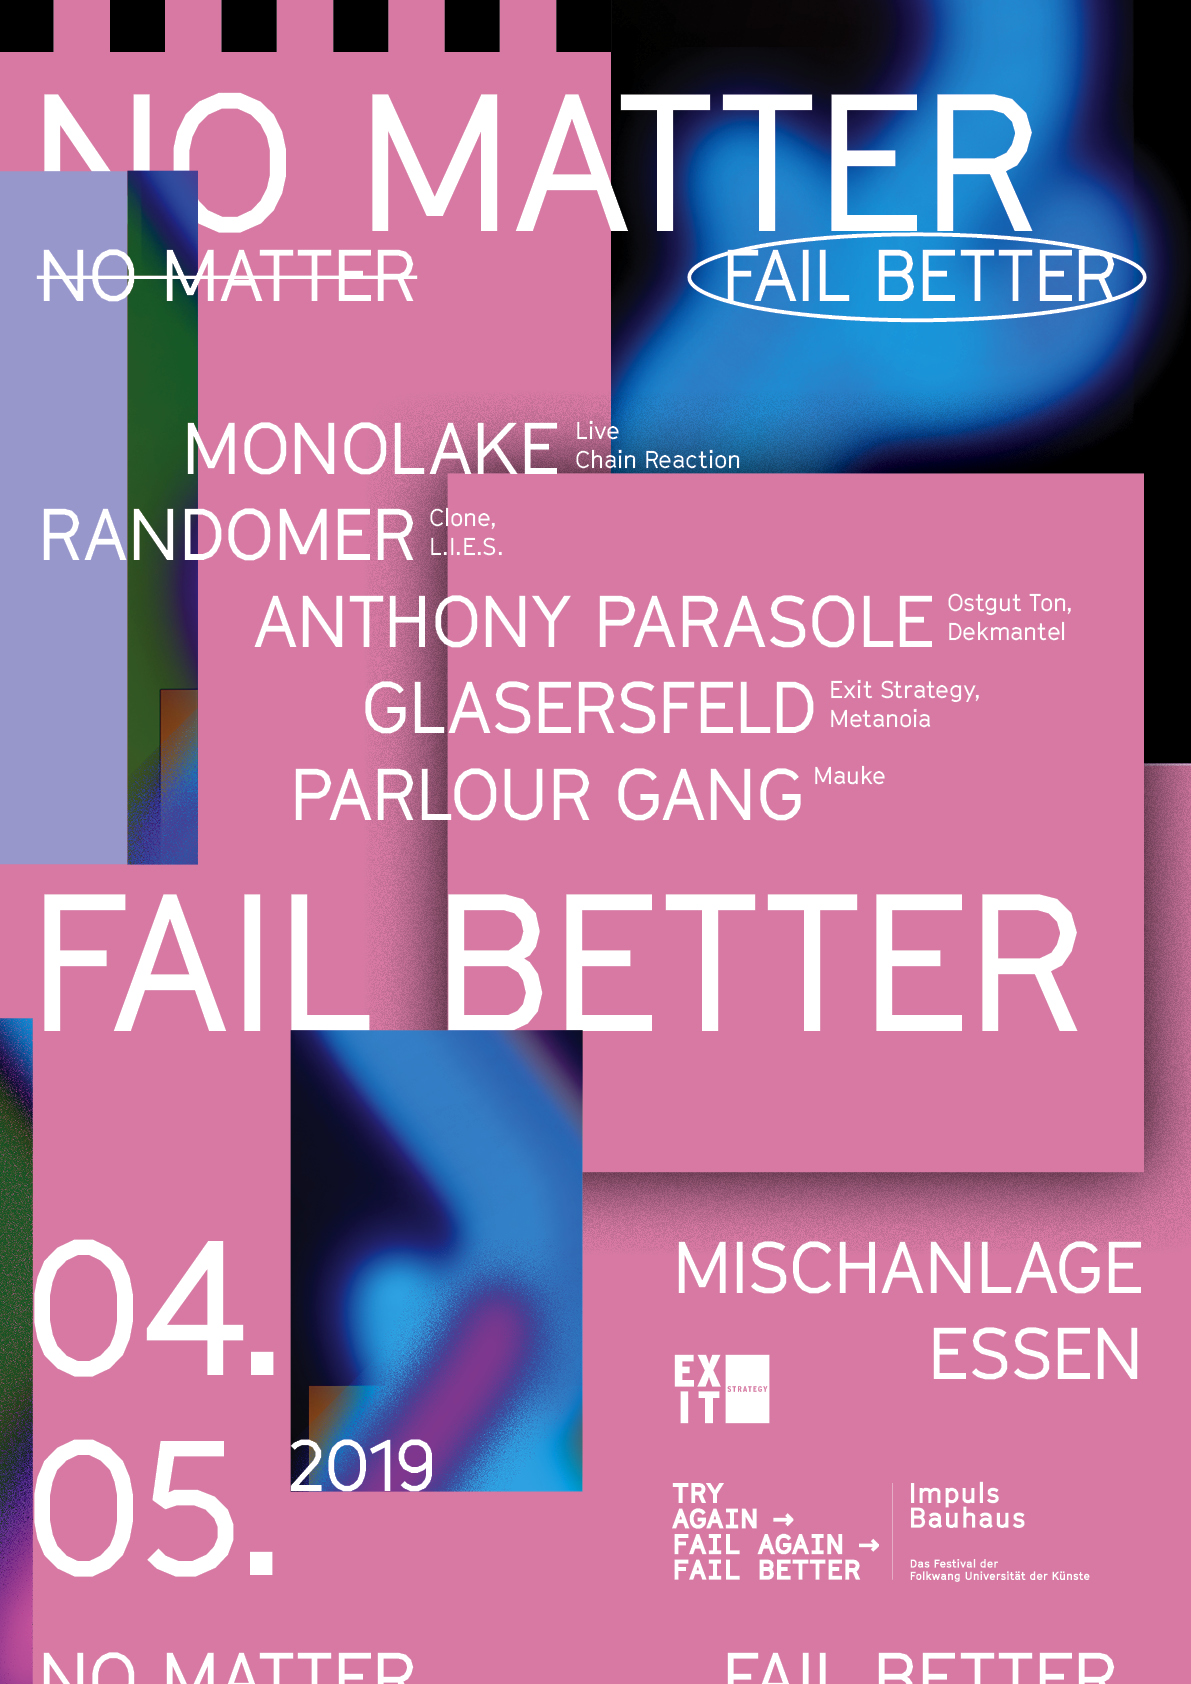 No Matter. Fail Better.